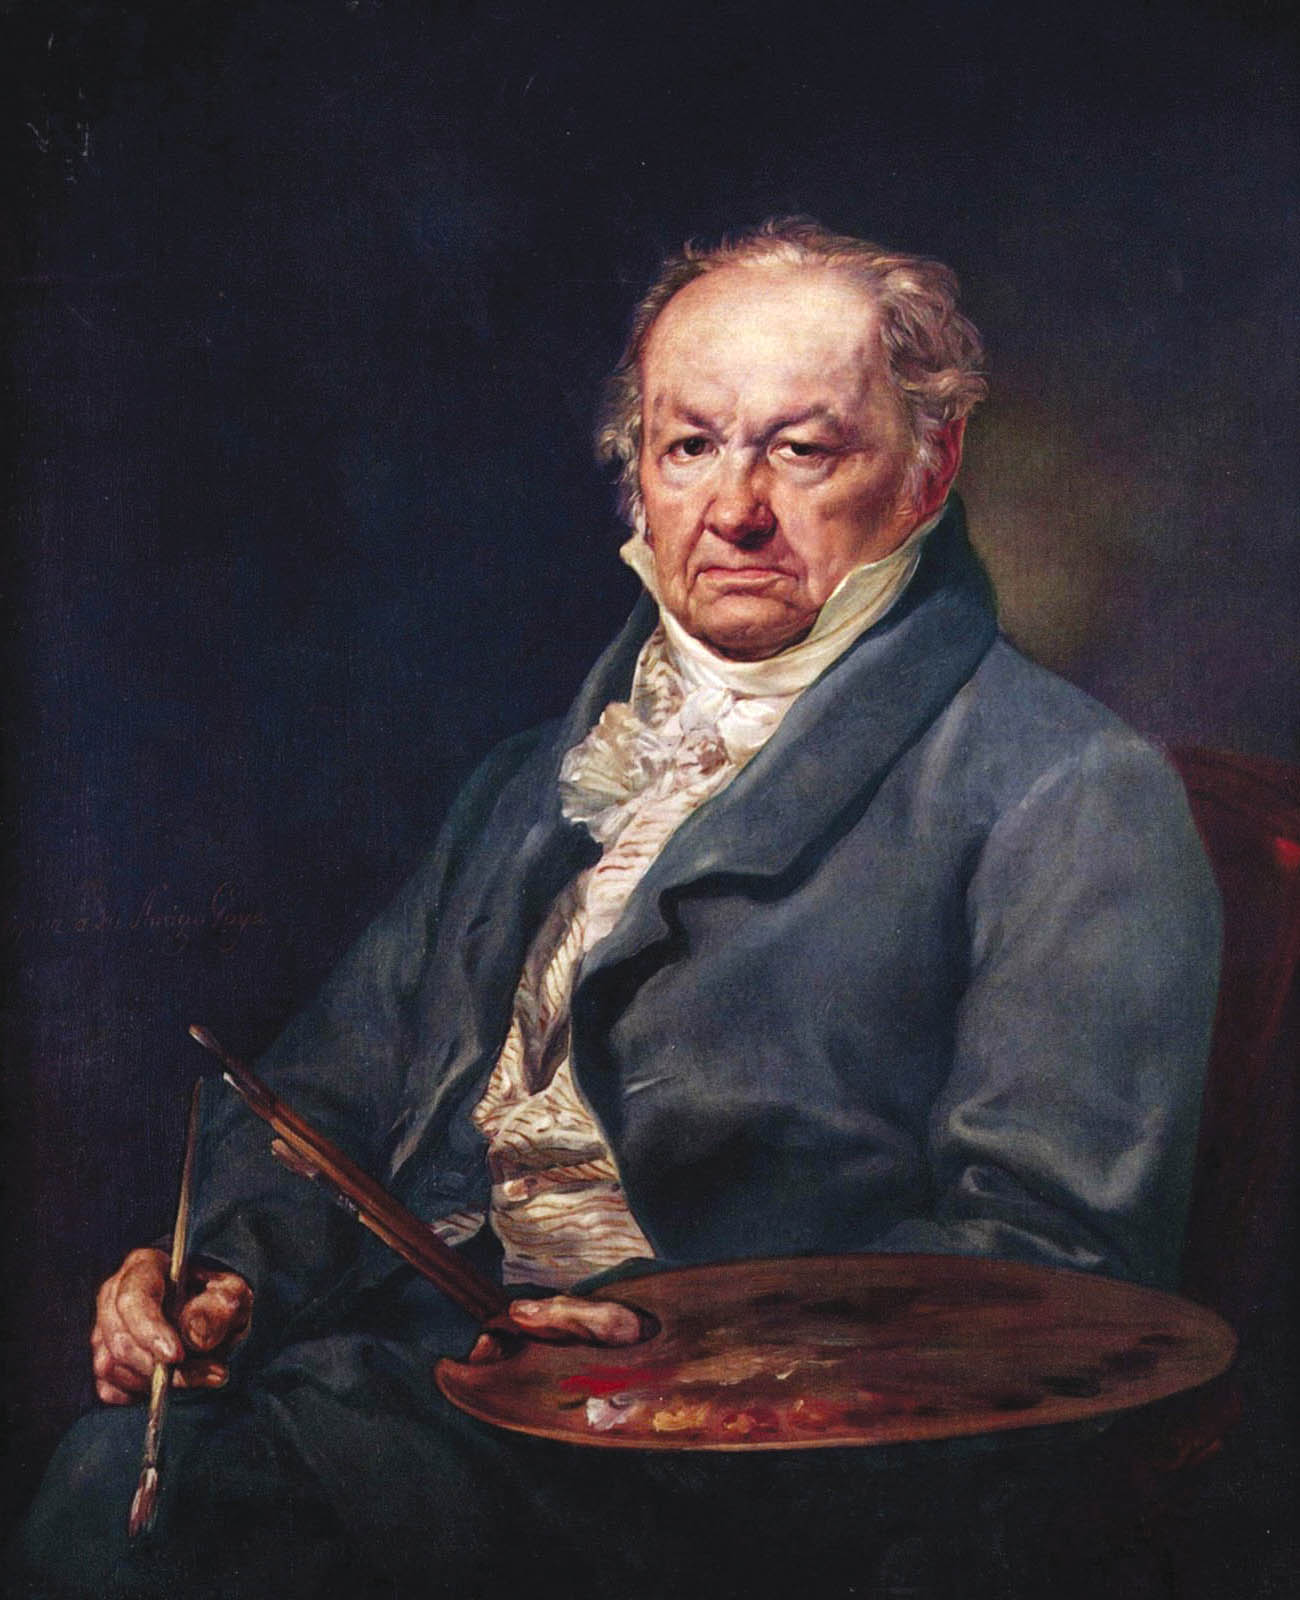 Portrait of Goya with his palette, 1827, by Vicente Lopez y Portana (1772-1850)